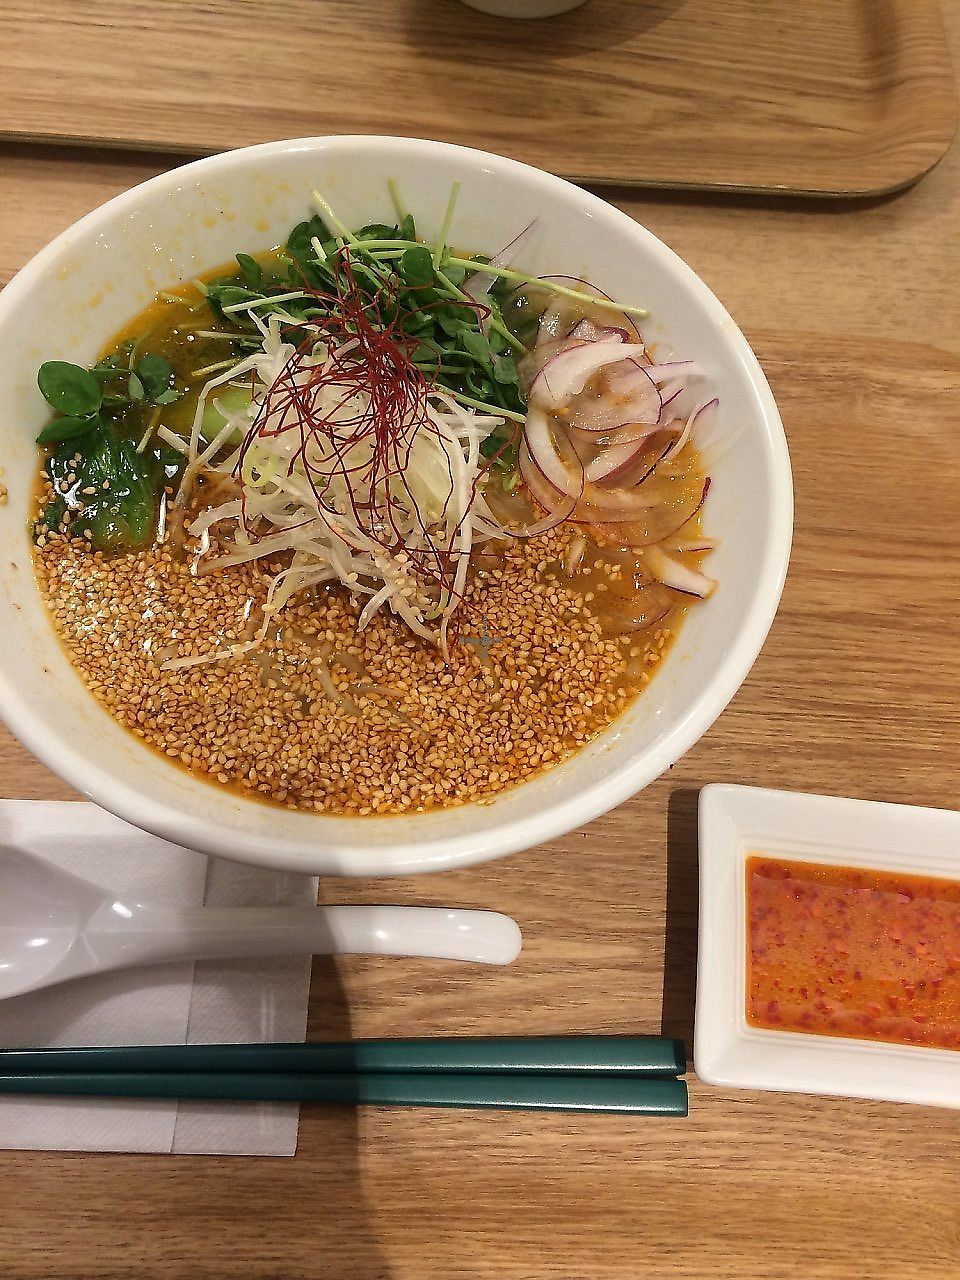 """Photo of T's Tan Tan  by <a href=""""/members/profile/TravelAmy"""">TravelAmy</a> <br/>white sesame ramen for around 880 yen  <br/> September 25, 2017  - <a href='/contact/abuse/image/57492/310975'>Report</a>"""